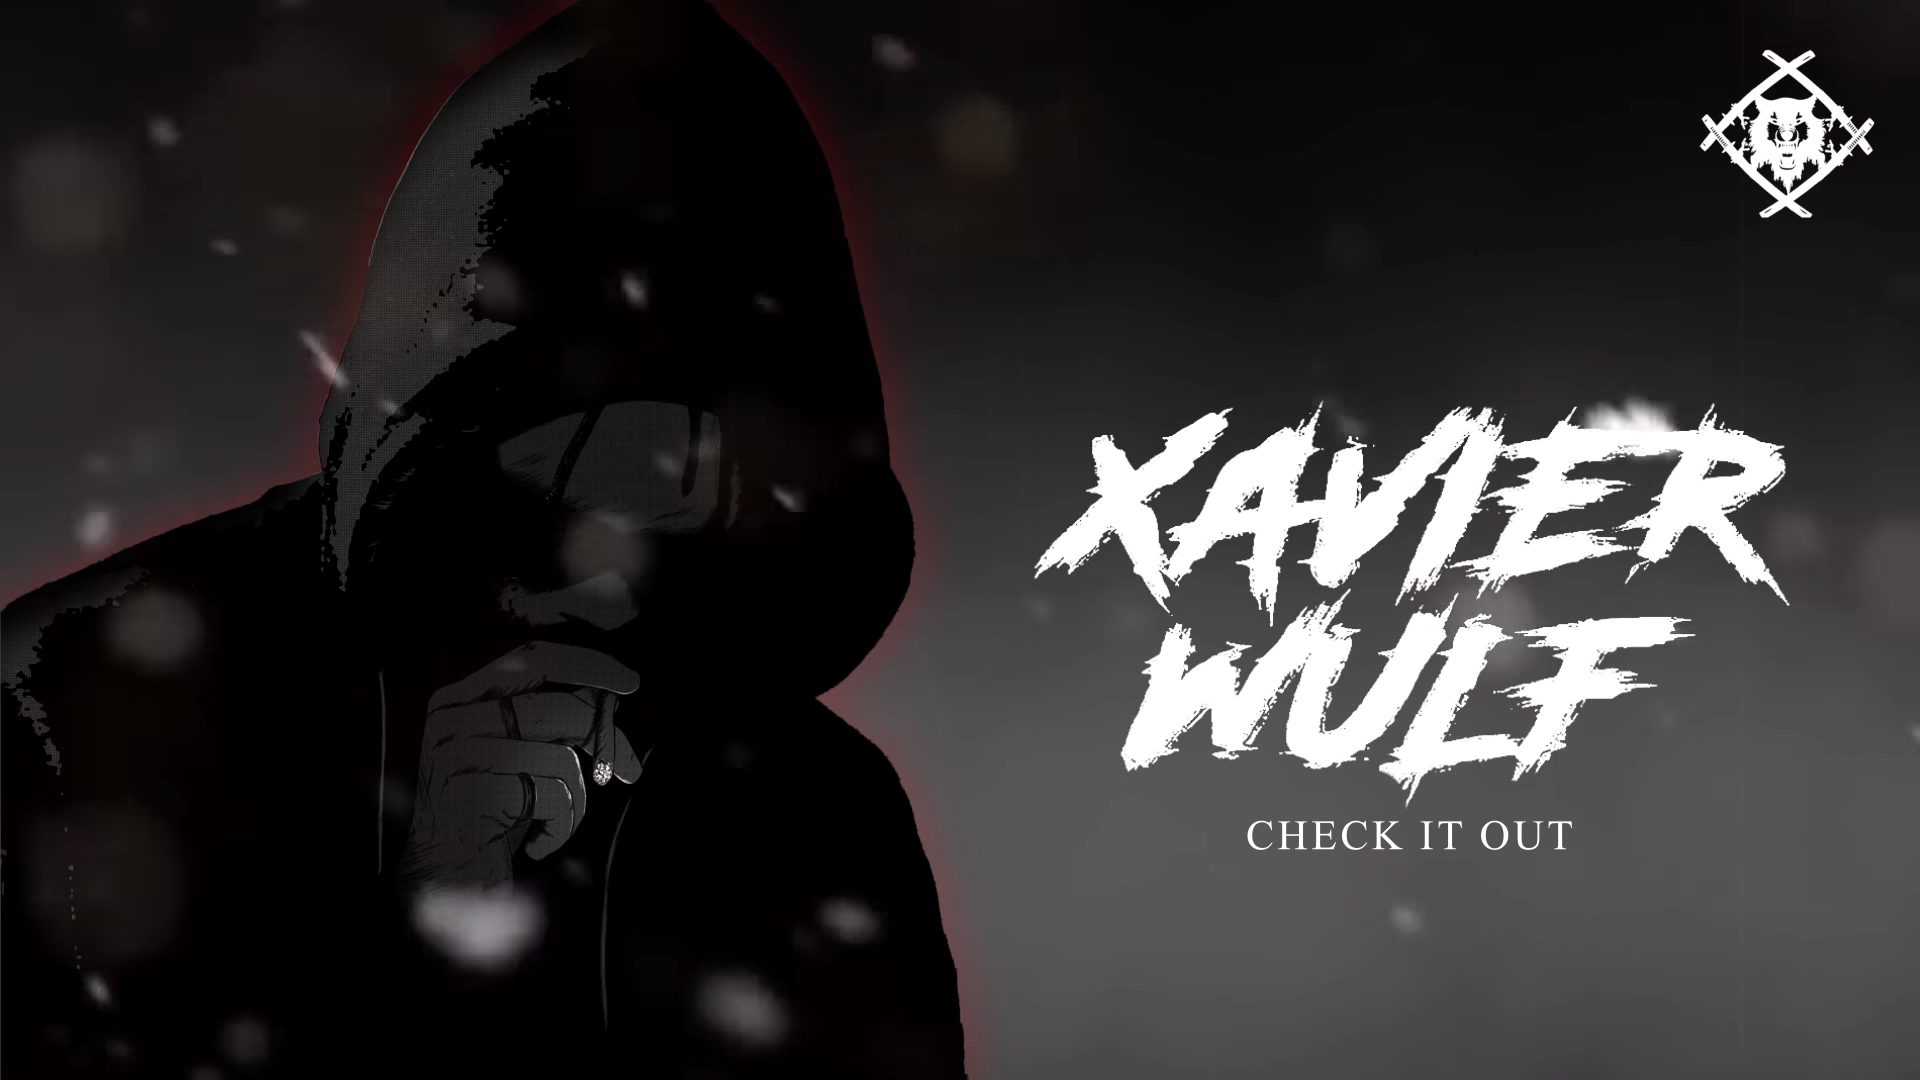 Xavier Wulf – Check It Out